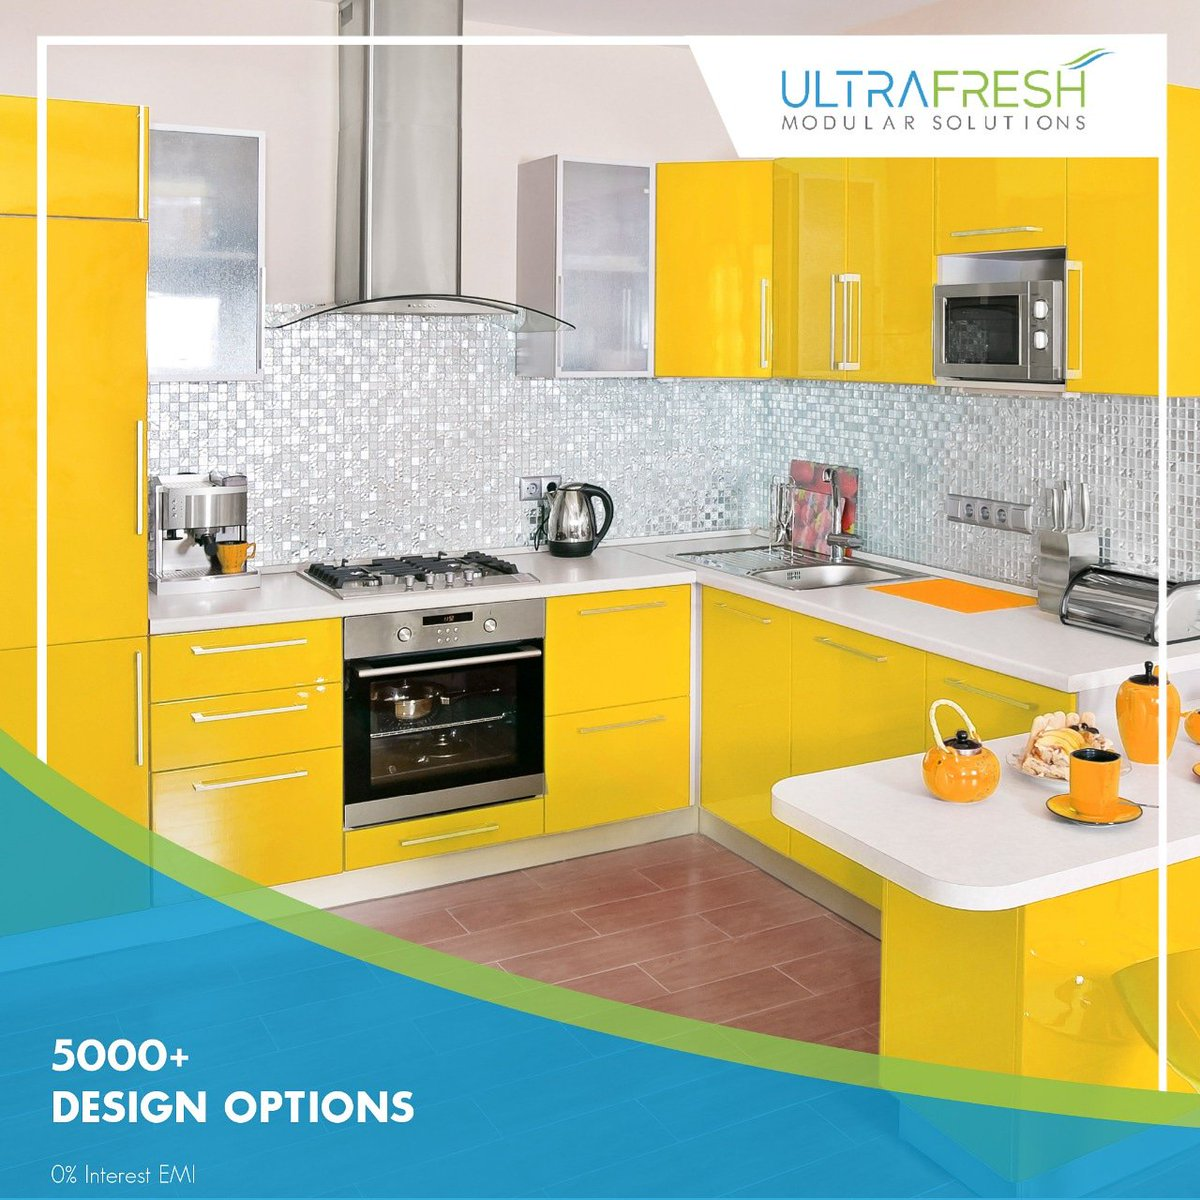 Ultrafresh On Twitter From Textured Wall Interiors To Bright Colored Kitchens These Styles From Ultrafreshness Define A Modern Cooking Space Advertising Homestyling Kitchen Kitchendesign Kitcheninspiration Homedecor Interiorinspiration